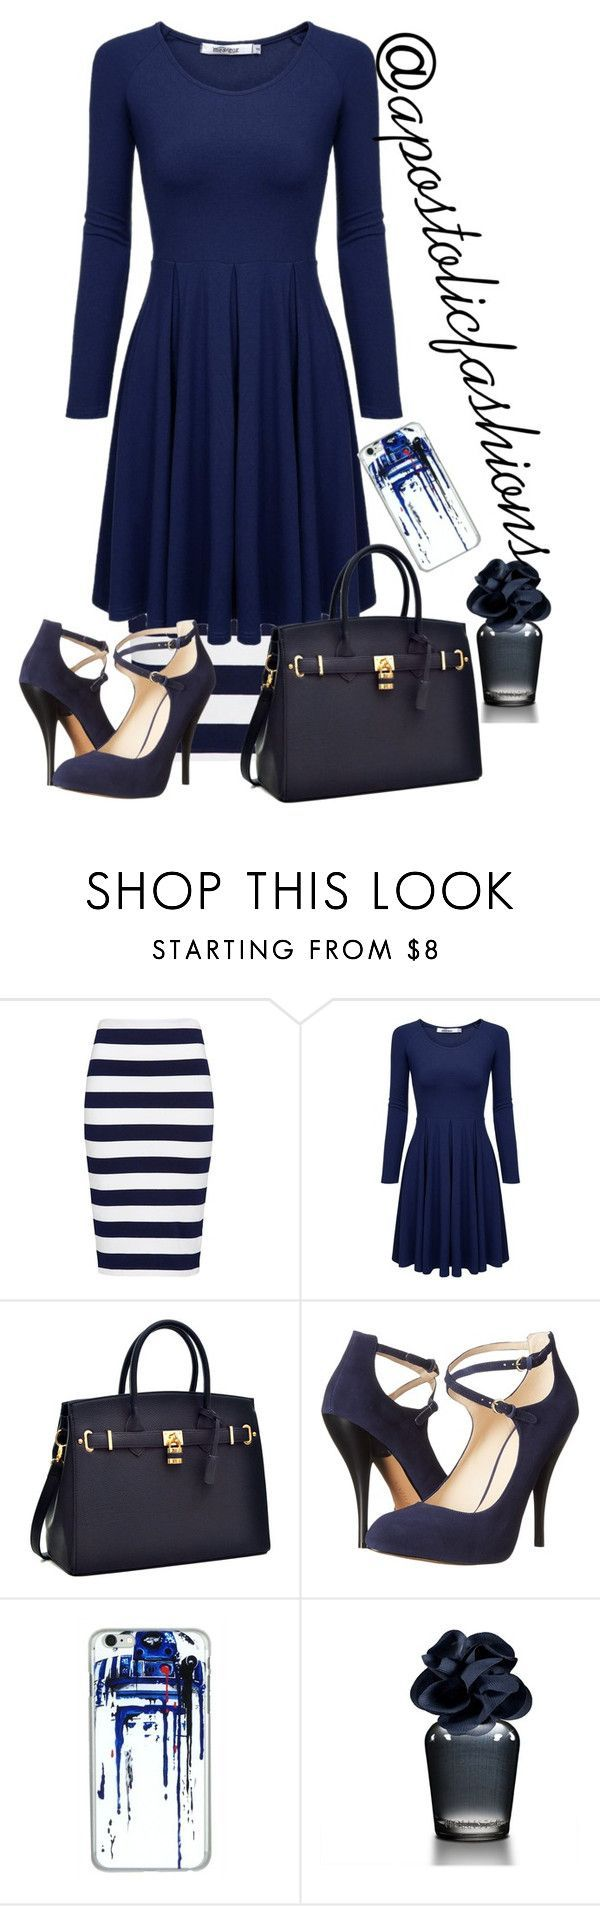 """Apostolic Fashions #1439 - """"Apostolic Fashions #1439"""" by apostolicfashions on Polyvore featuring French Connection, Nine West, Hollister Co., modestlykay and modestlywhit"""